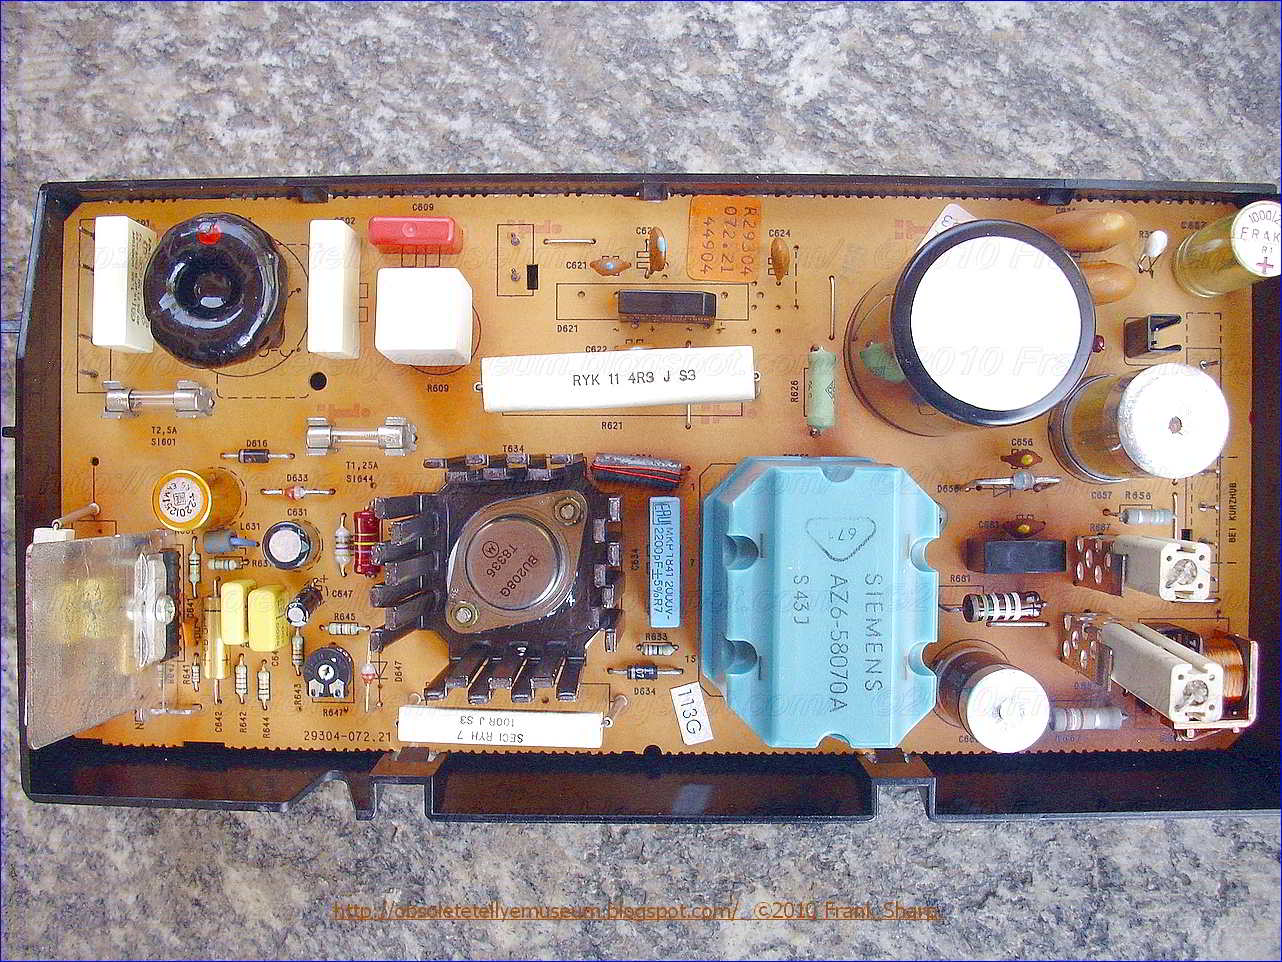 Obsolete Technology Tellye Grundig Super Color C7443 Serie F 3022 Transistors Dc Voltage Grounded With Ac Input Electrical 2 The Protective 5 Of Control Circuit Rs Is Supplied Via A Divider R8 R7 Directly From Output 3 4 Rectifier G Delivering